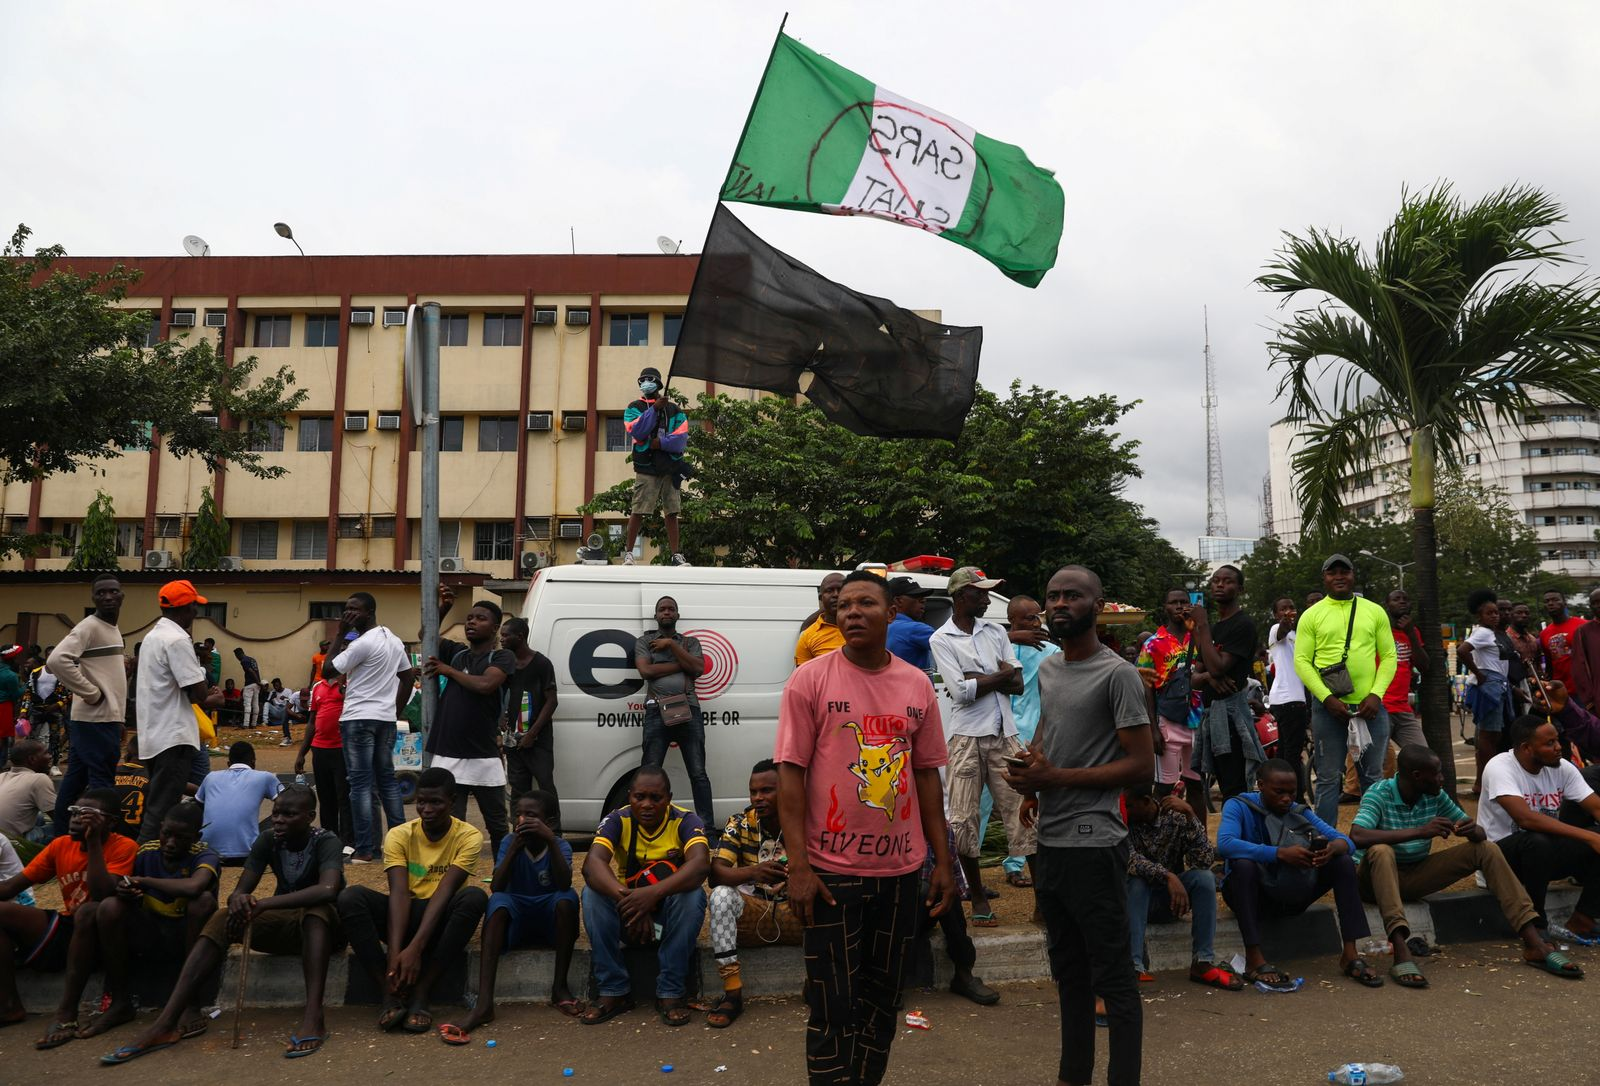 Demonstrators gather on the street to protest against alleged police brutality in Lagos